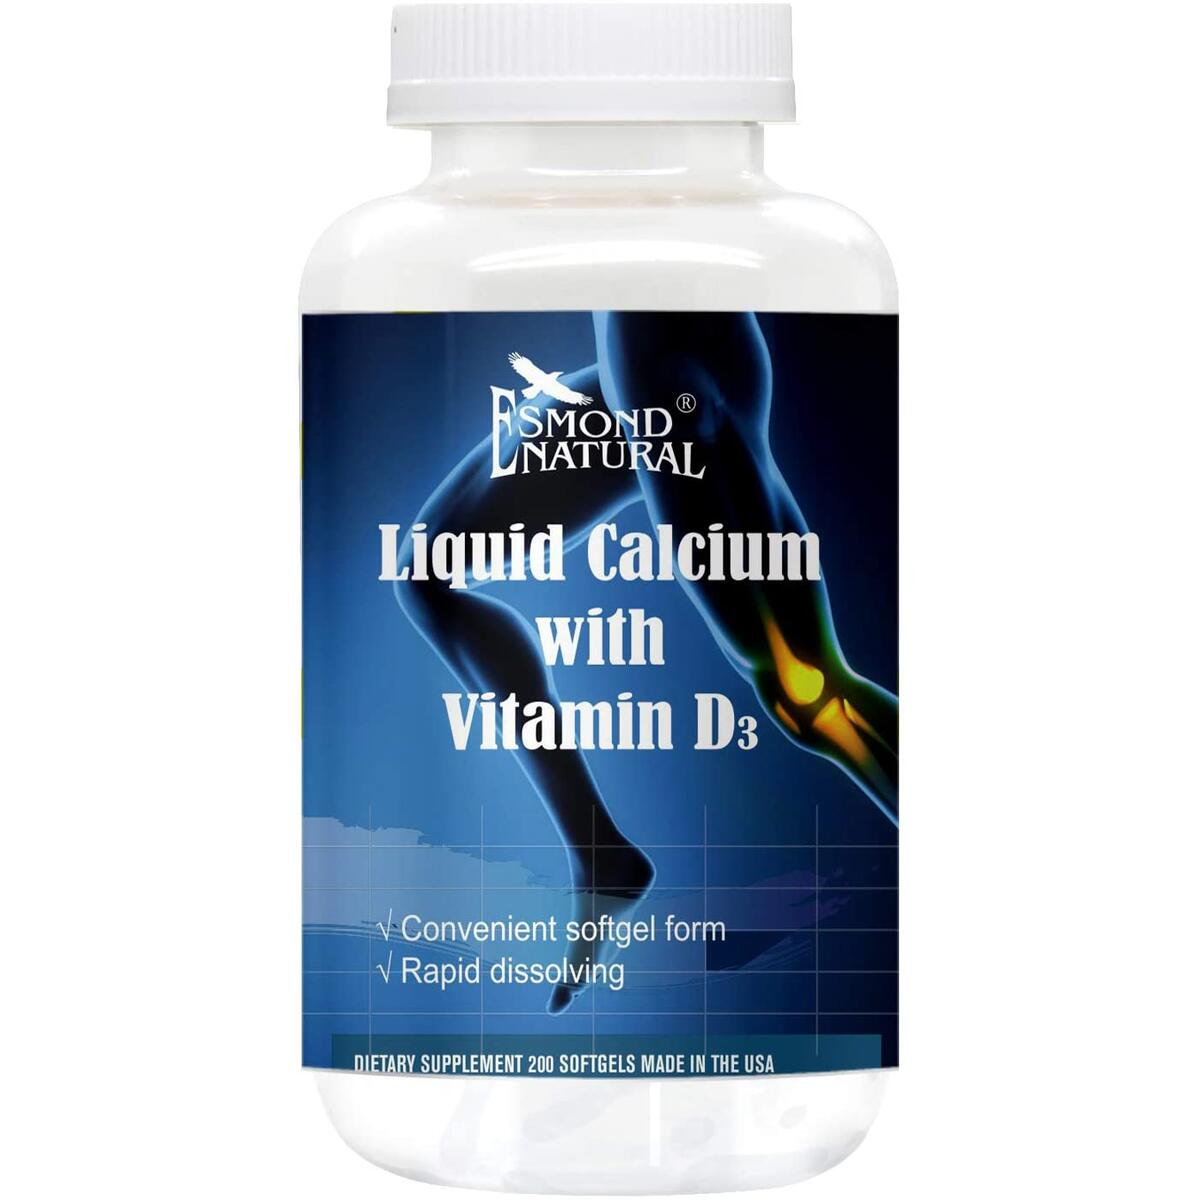 Esmond Natural: Liquid Calcium with Vitamin D3 (Rapid Dissolving), GMP, Natural Product Assn Certified, Made in USA-200 Softgels